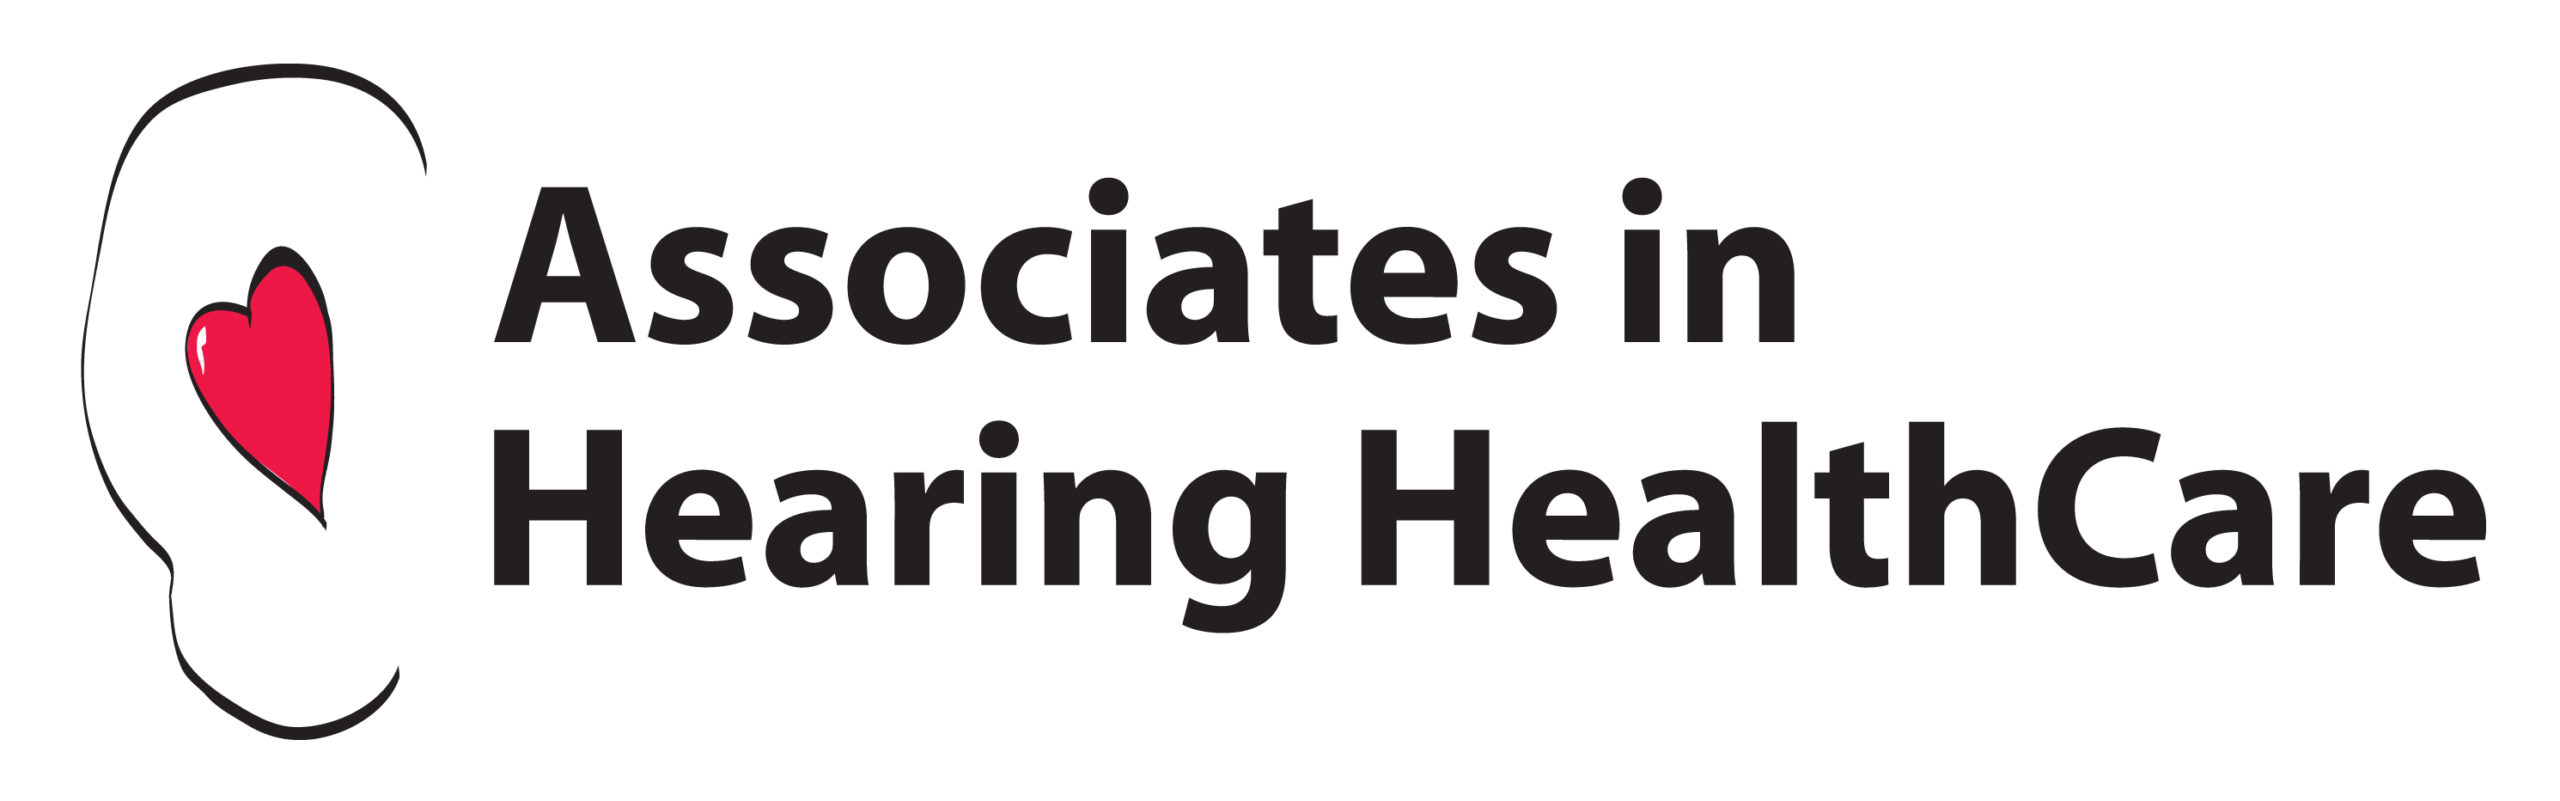 Associates in Hearing HealthCare